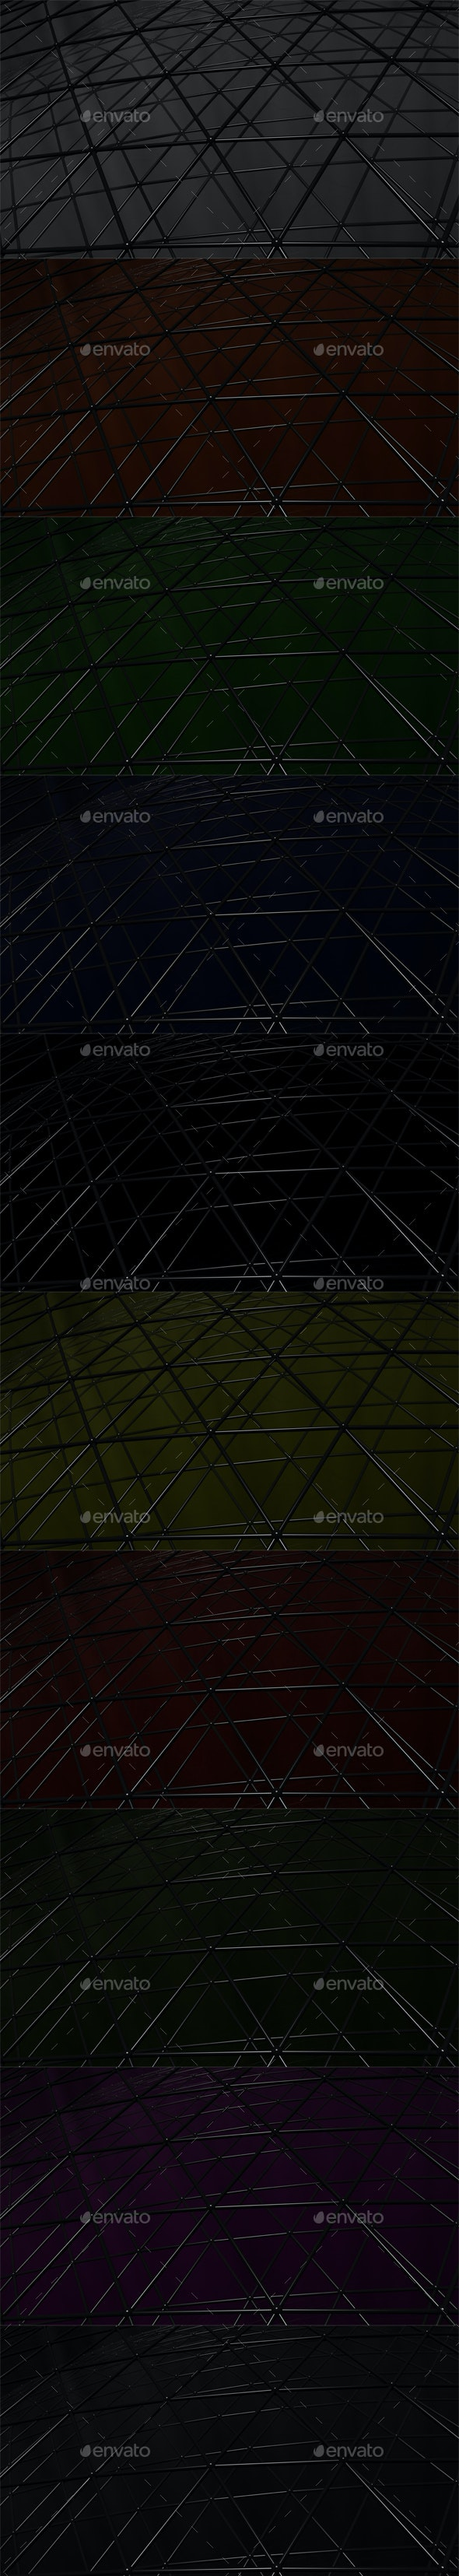 Triangular Grid 2 (Pack of 10) - Tech / Futuristic Backgrounds